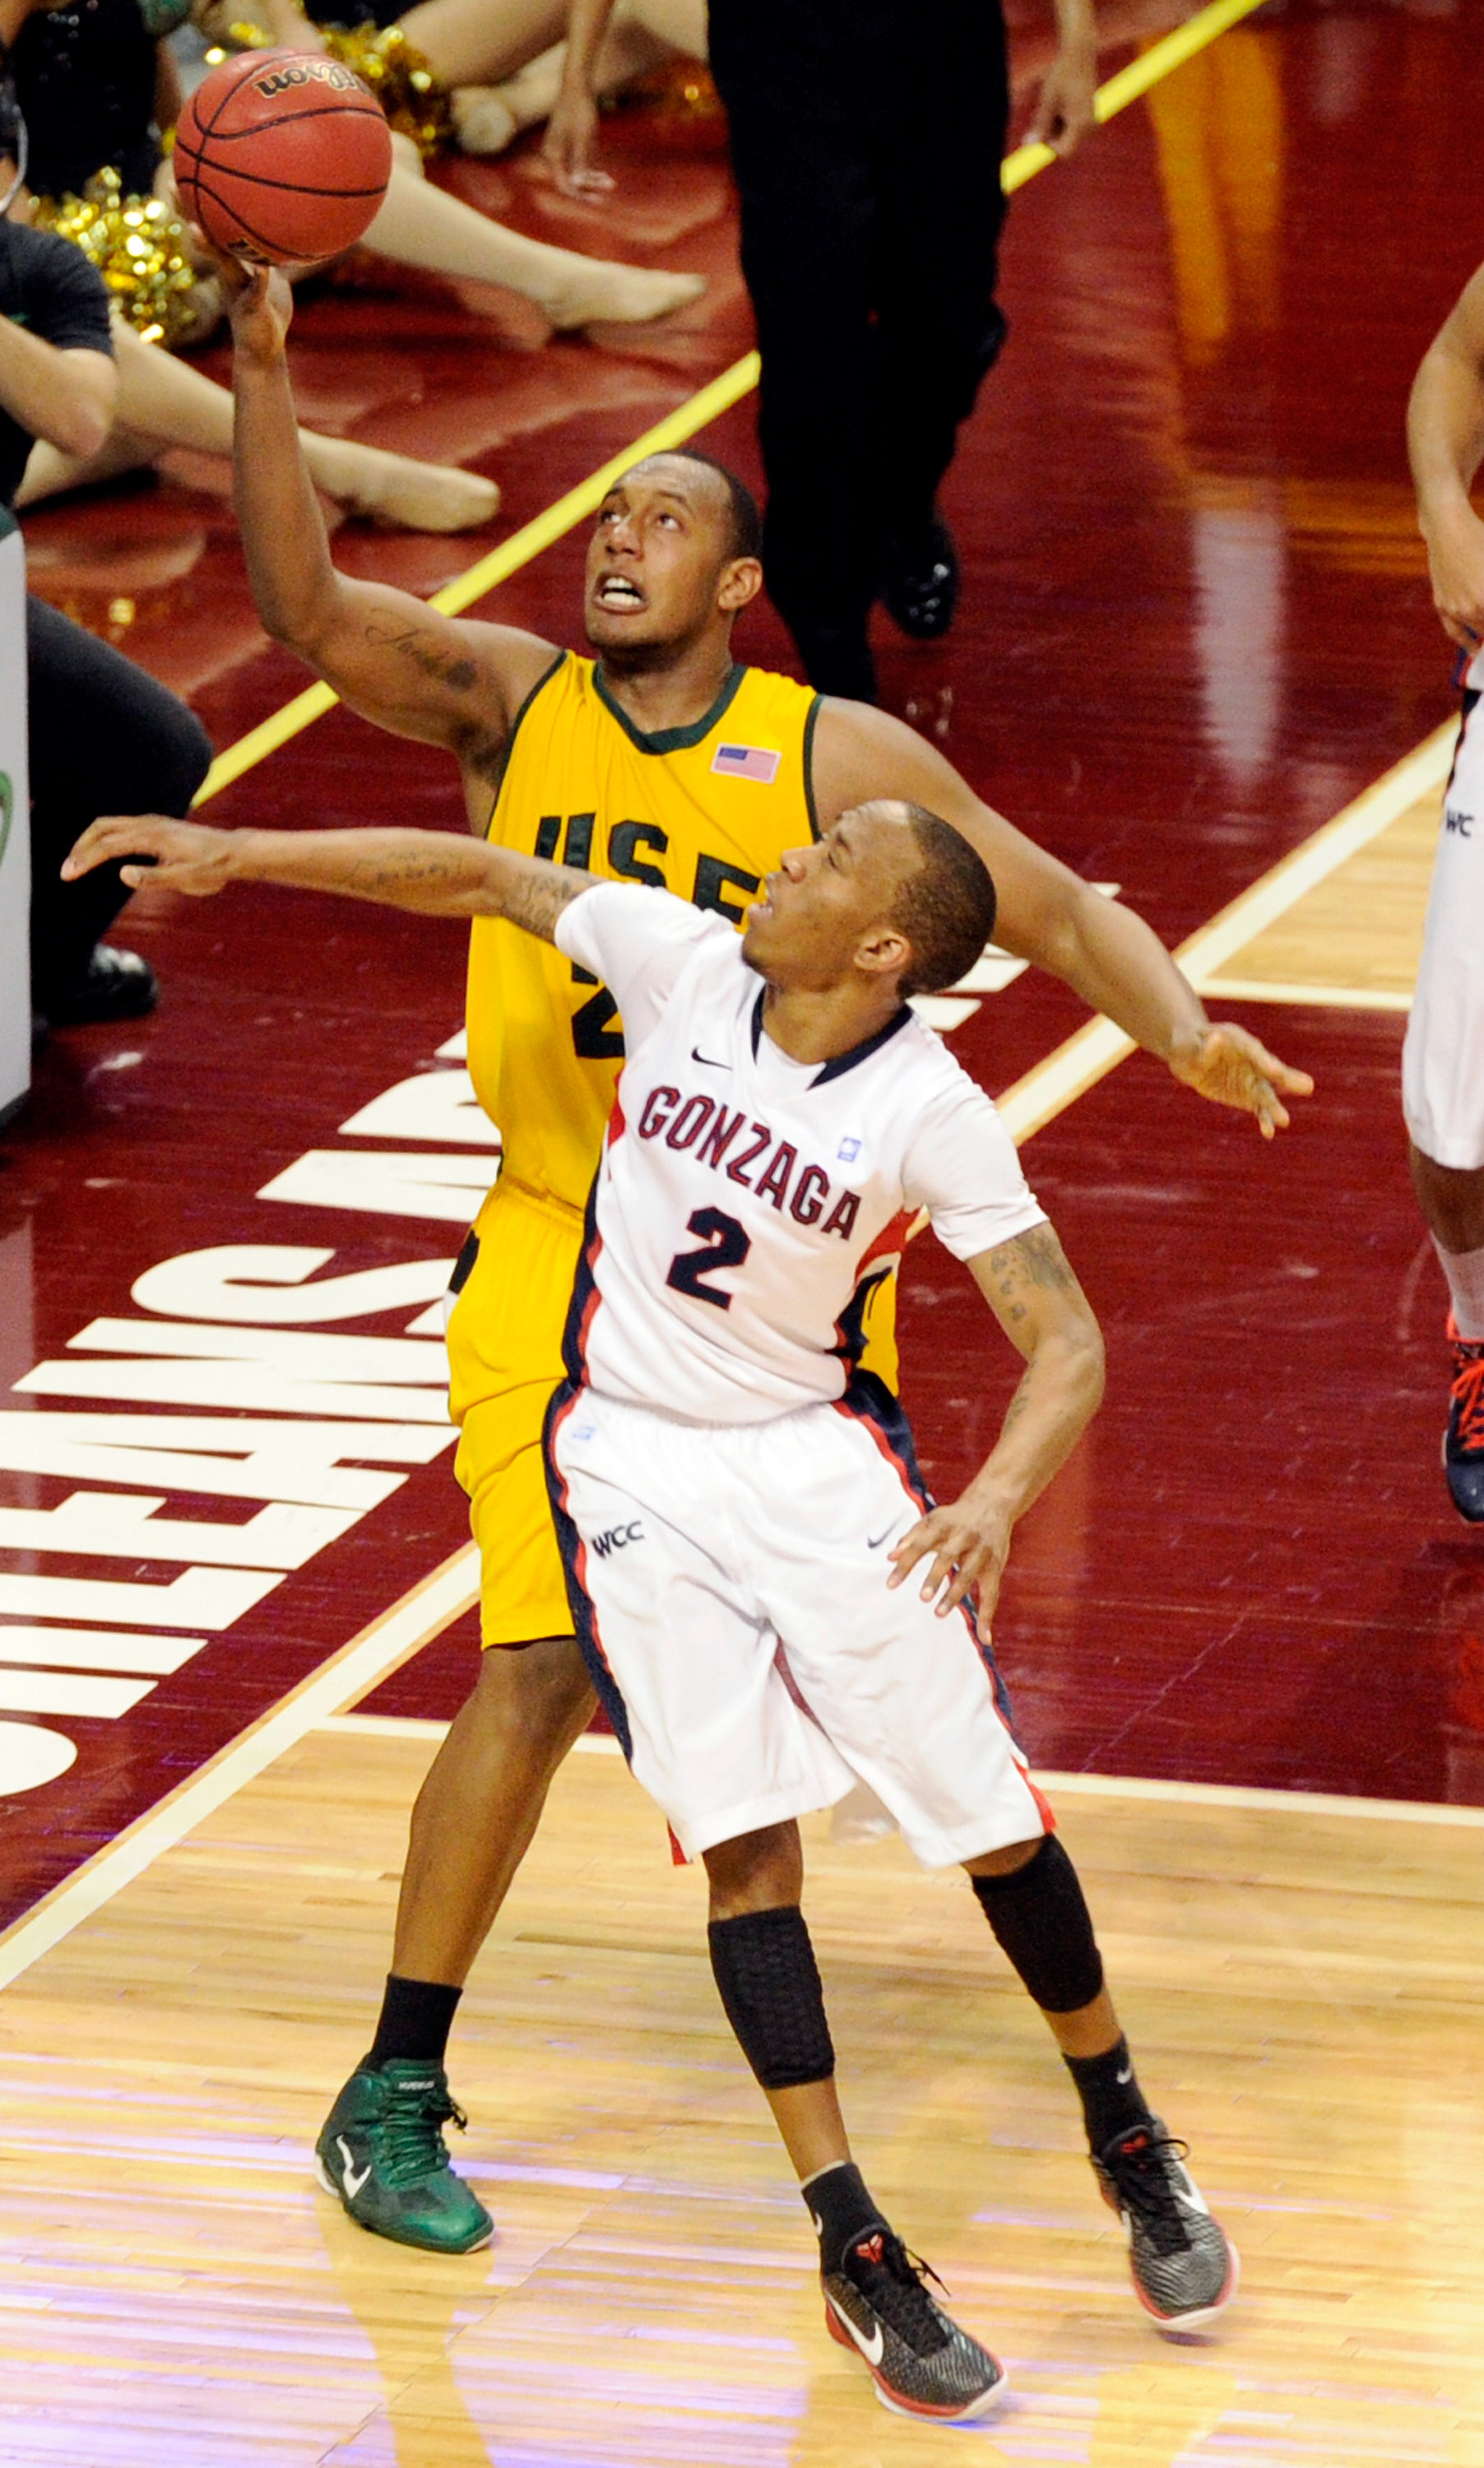 LAS VEGAS, NV - MARCH 06:  Perris Blackwell #22 of the San Francisco Dons grabs a rebound over Marquise Carter #2 of the Gonzaga Bulldogs during a semifinal game of the Zappos.com West Coast Conference Basketball tournament at the Orleans Arena March 6, 2